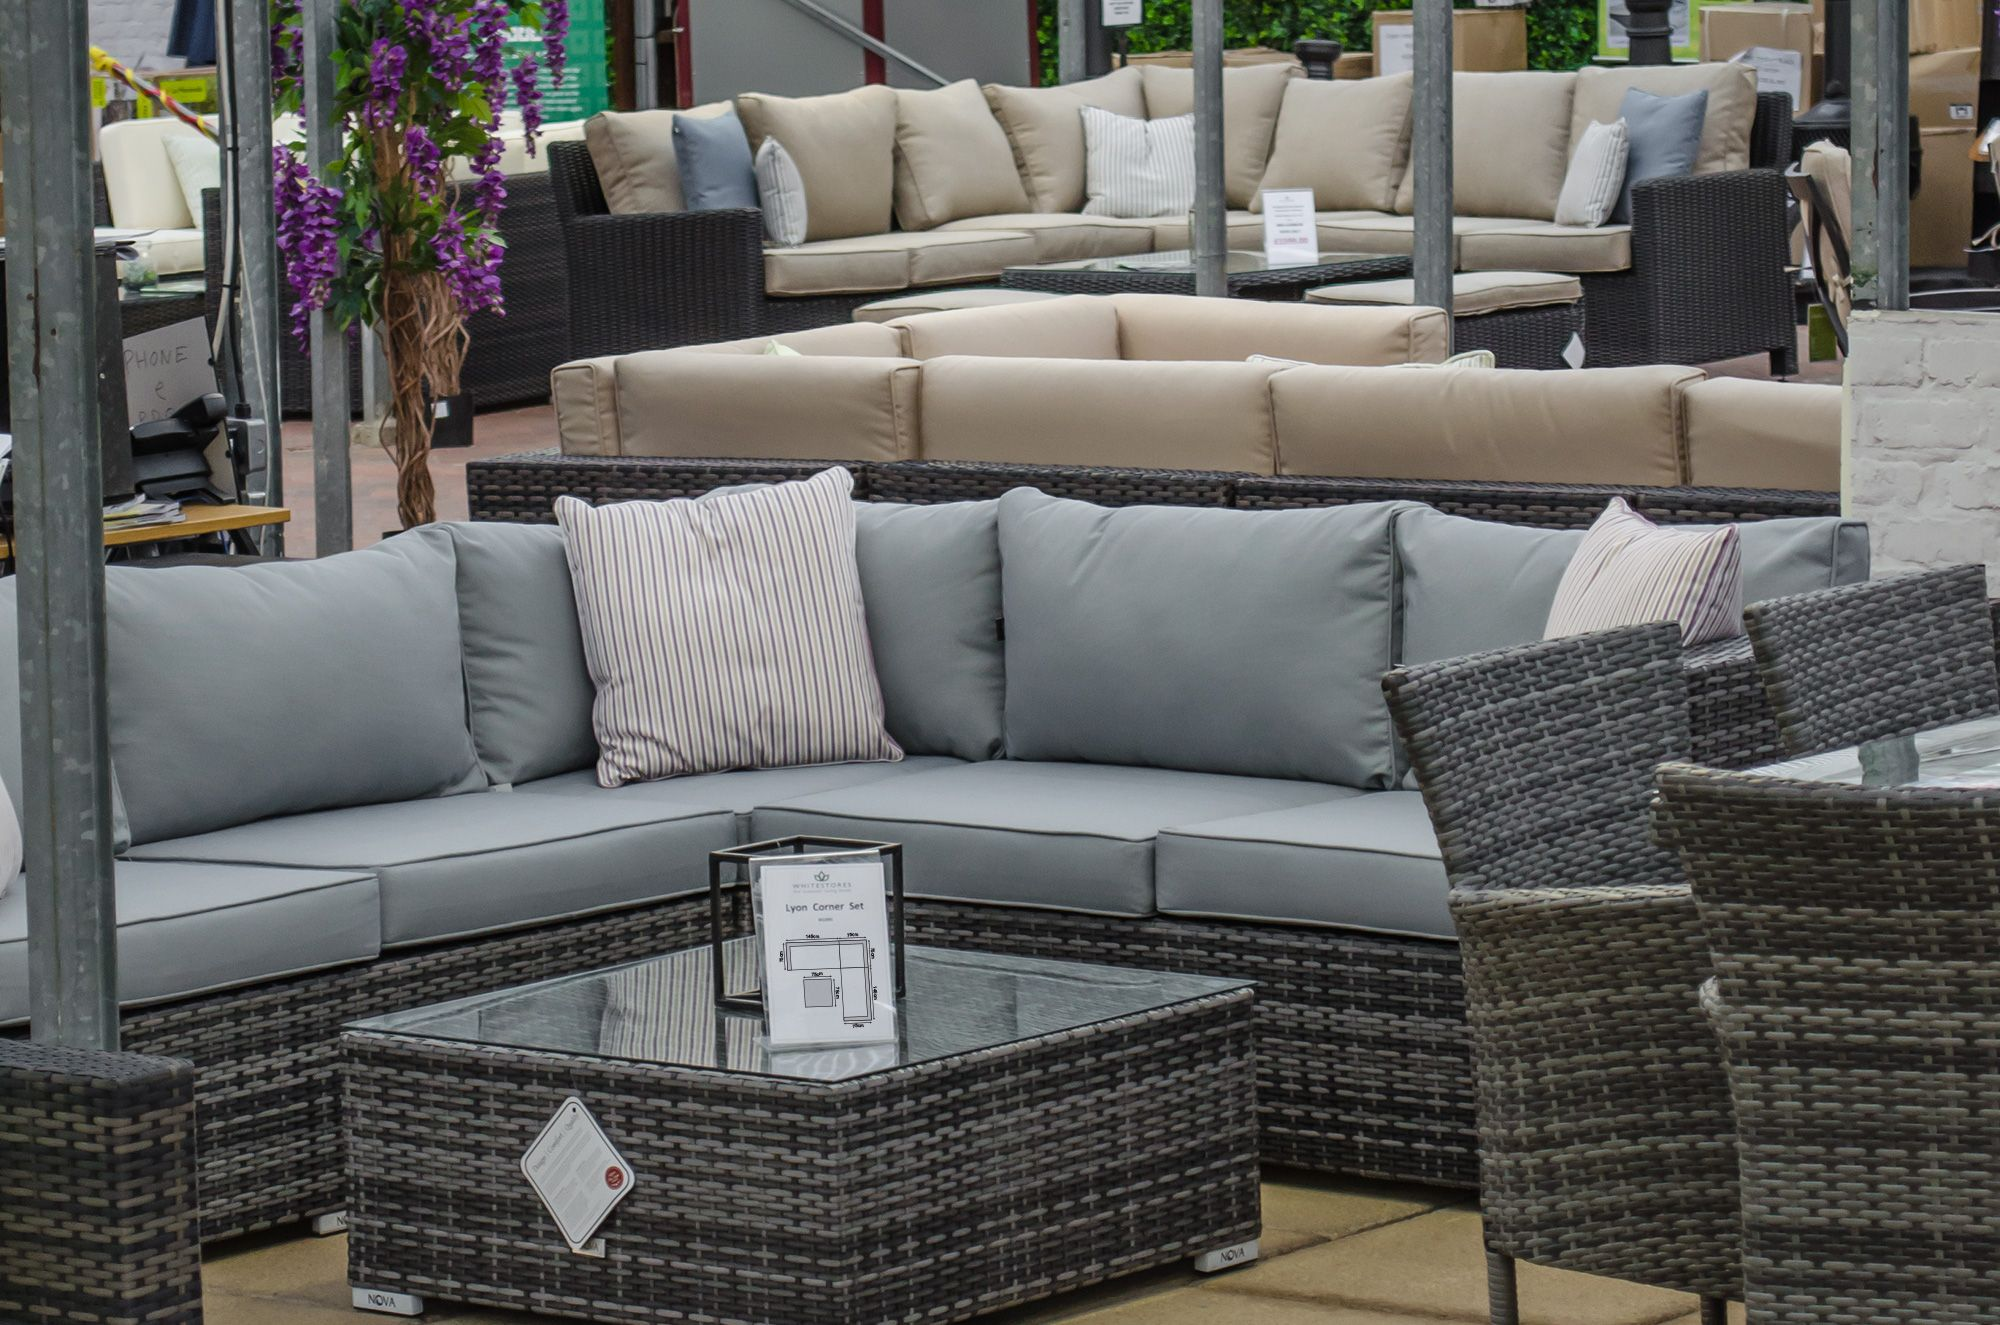 Rattan Garden Furniture Ipswich Visit Our Showroom